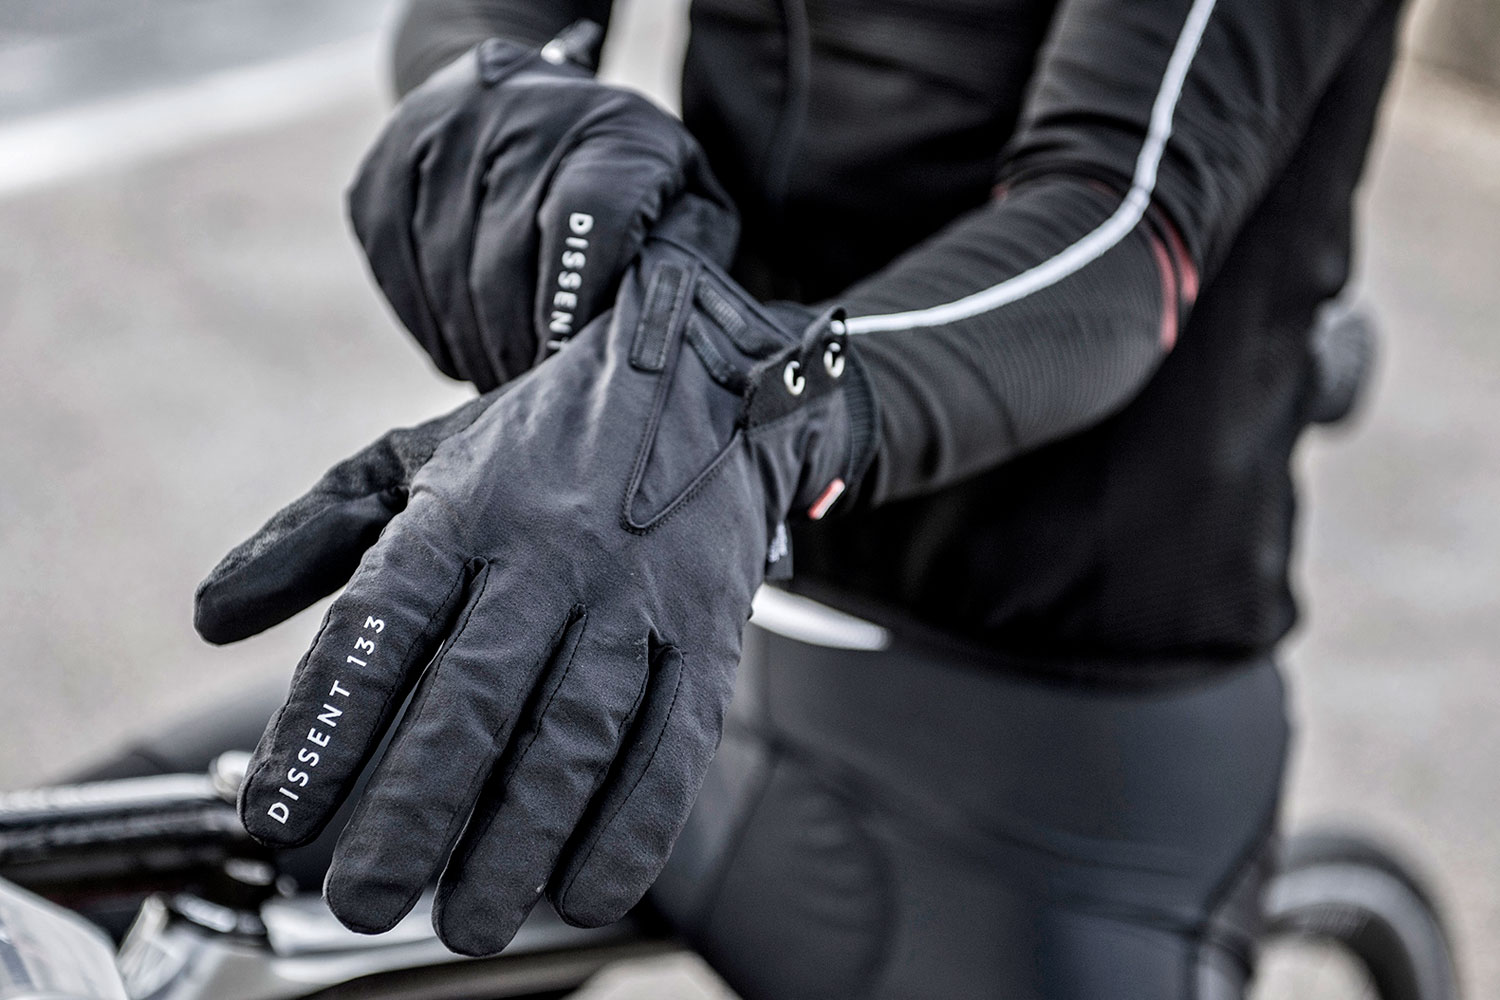 Dissent 133 by TheRiderFirm layered winter biking gloves wet cold cycling glove system one-hand gusset opening